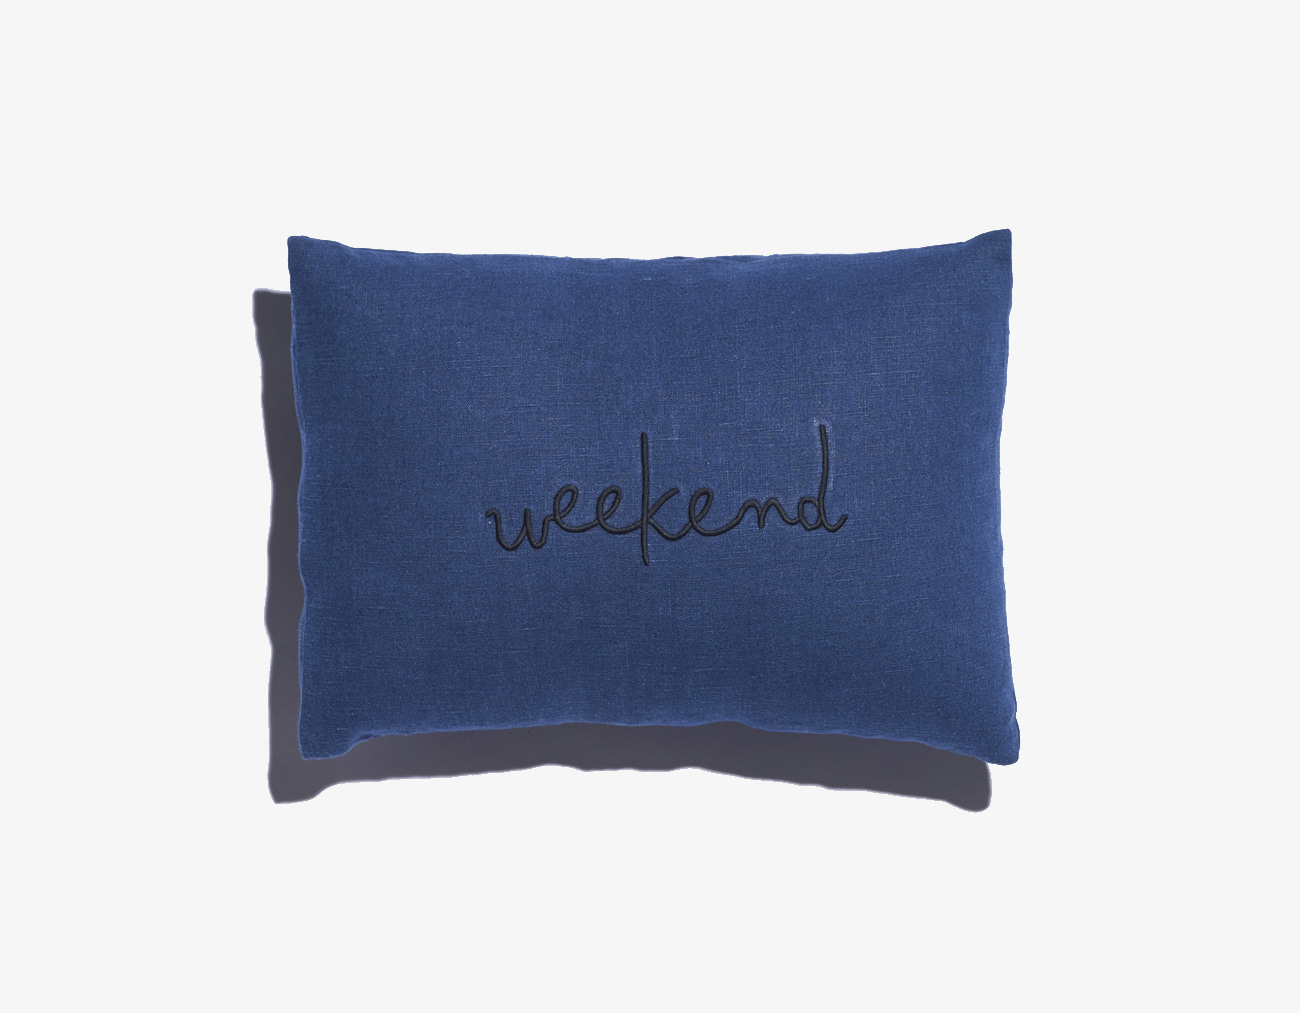 WEEKEND CUSHION-NAVY